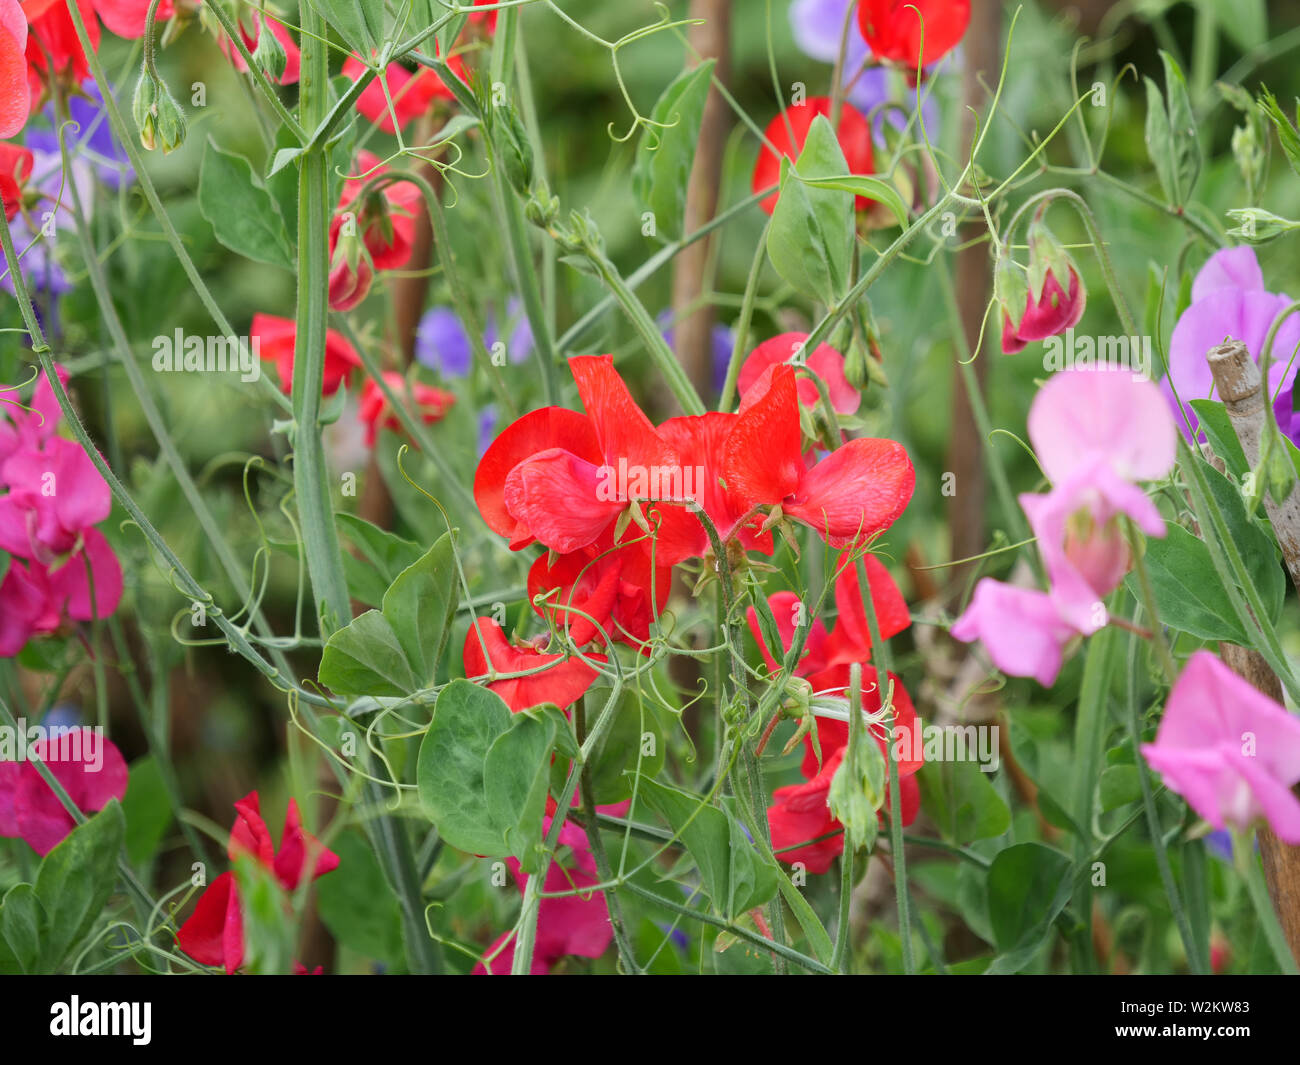 Red and pink flowering climbing sweet peas or Lathyrus in the garden. - Stock Image